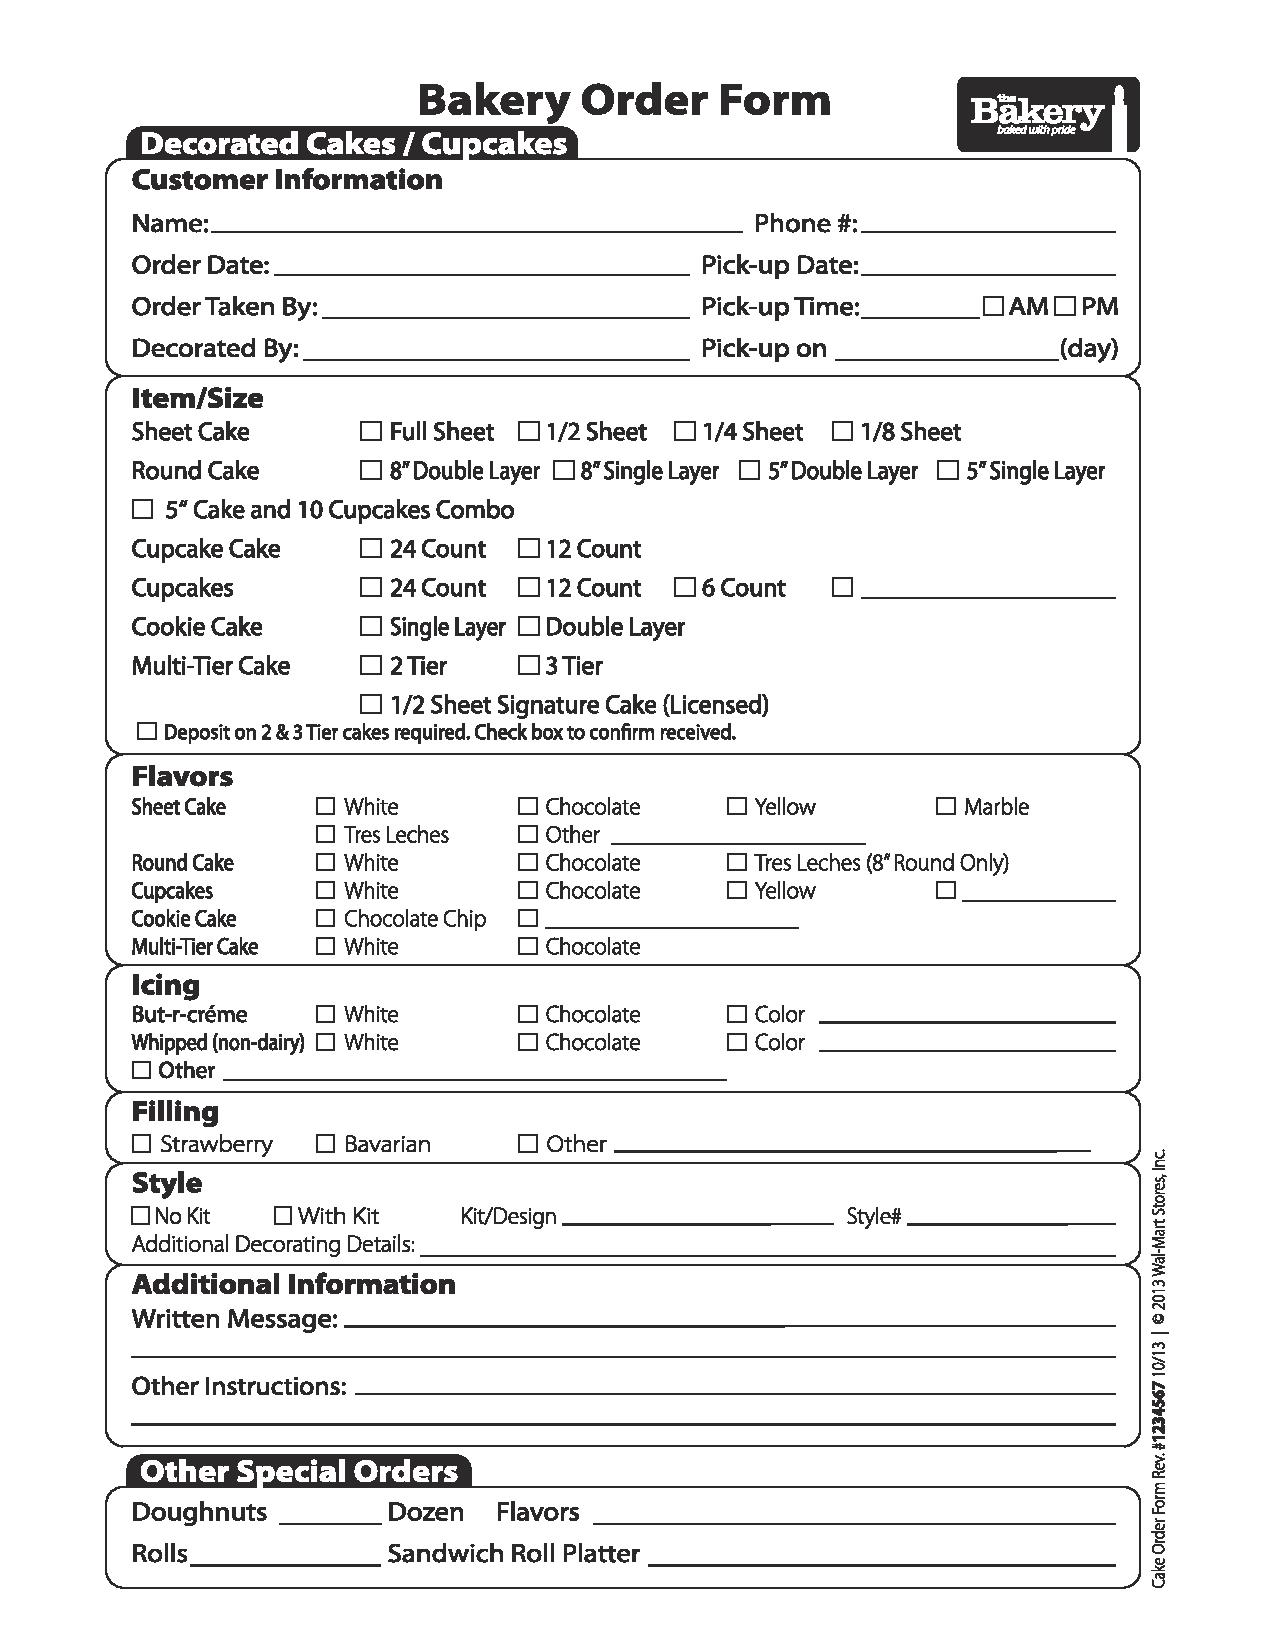 costco cake order form costco cake order form 2016 3086